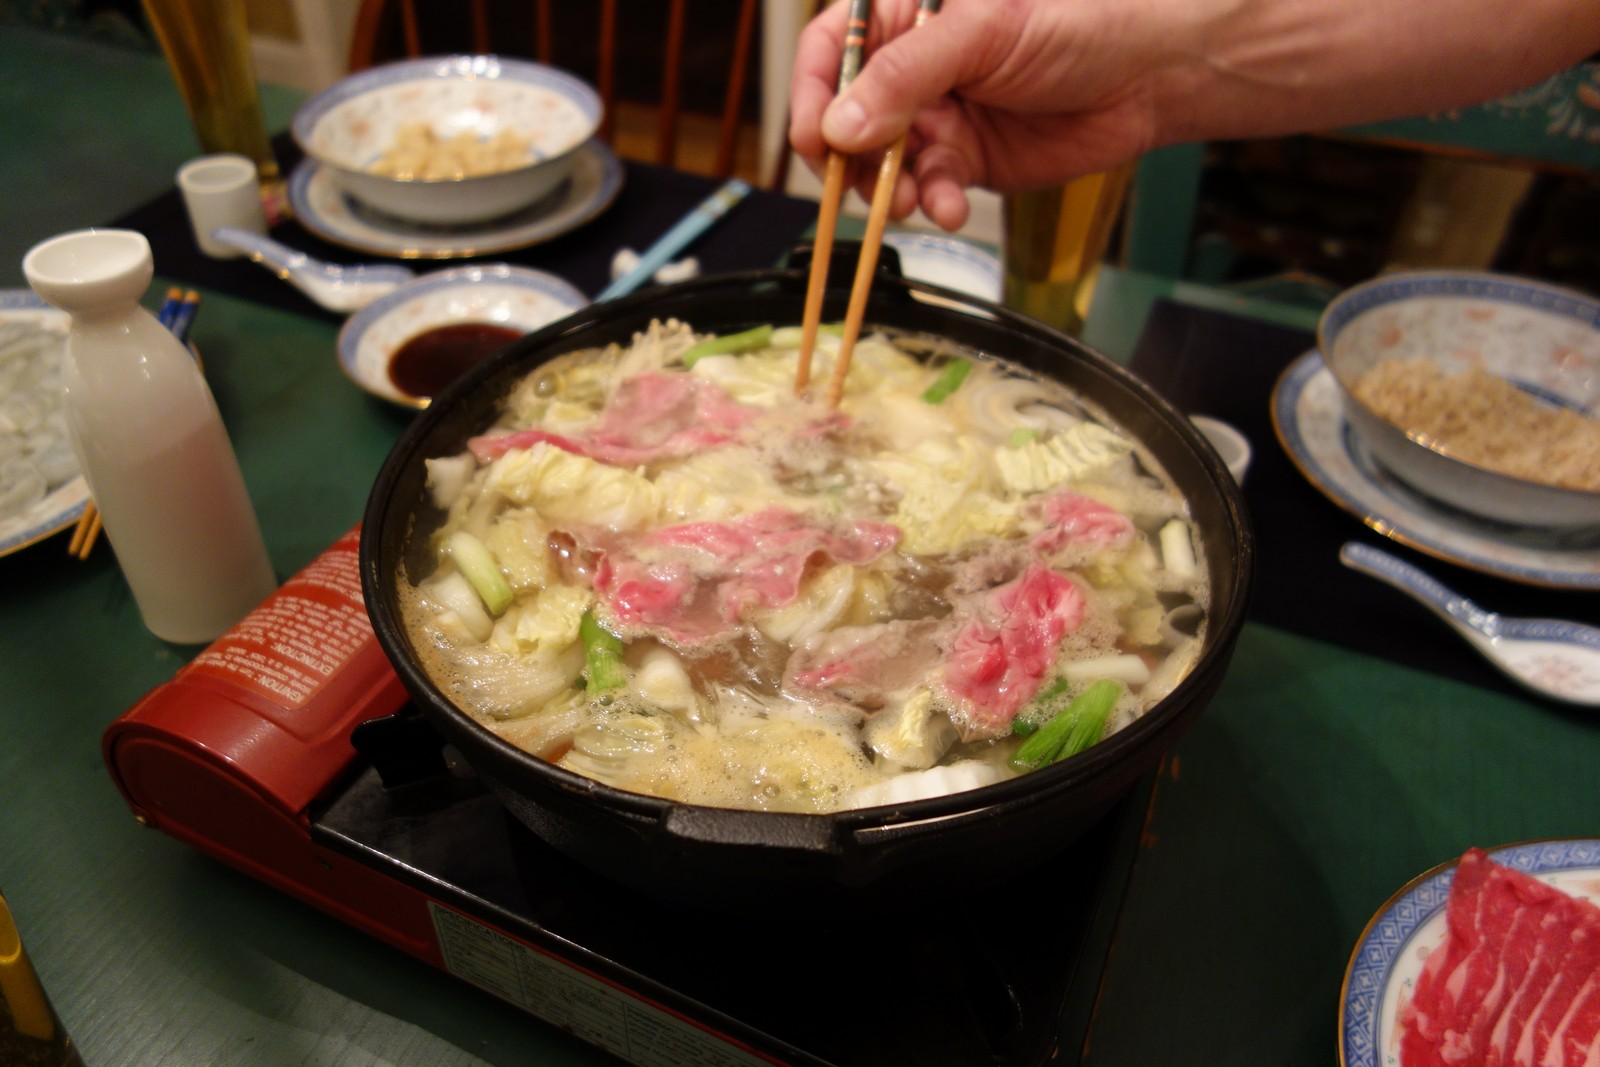 The beef cooks really fast because it is sliced so thin. This makes for a really relaxed pace as you make your way through dinner. If you want more, just put a piece in the pot and it will be done in less than a minute.